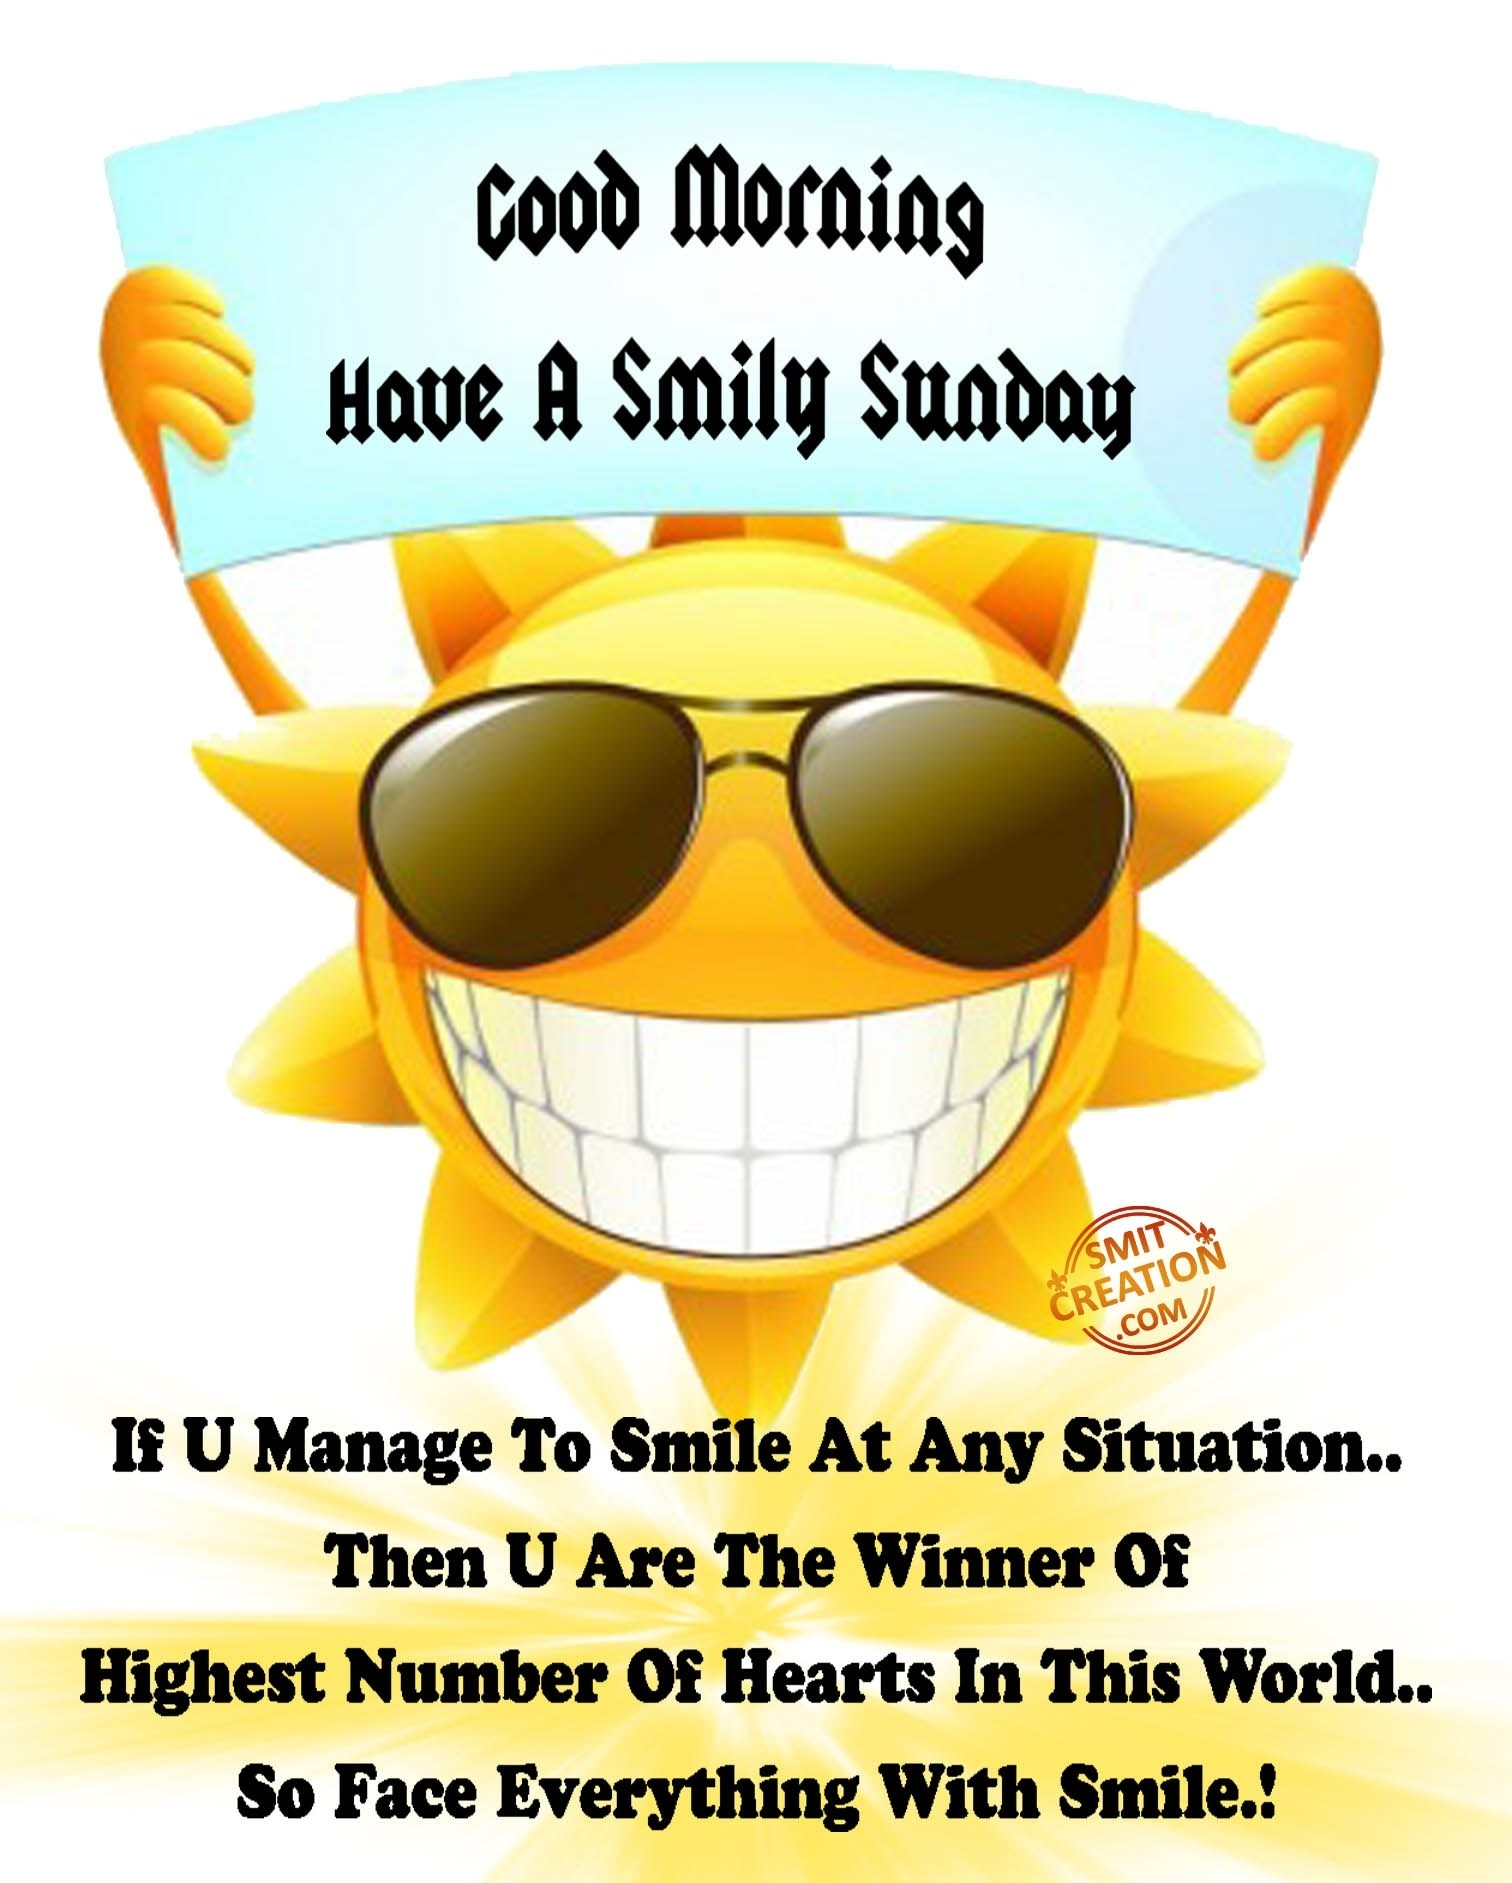 Good Morning Smile Pictures And Graphics Smitcreation Page 5